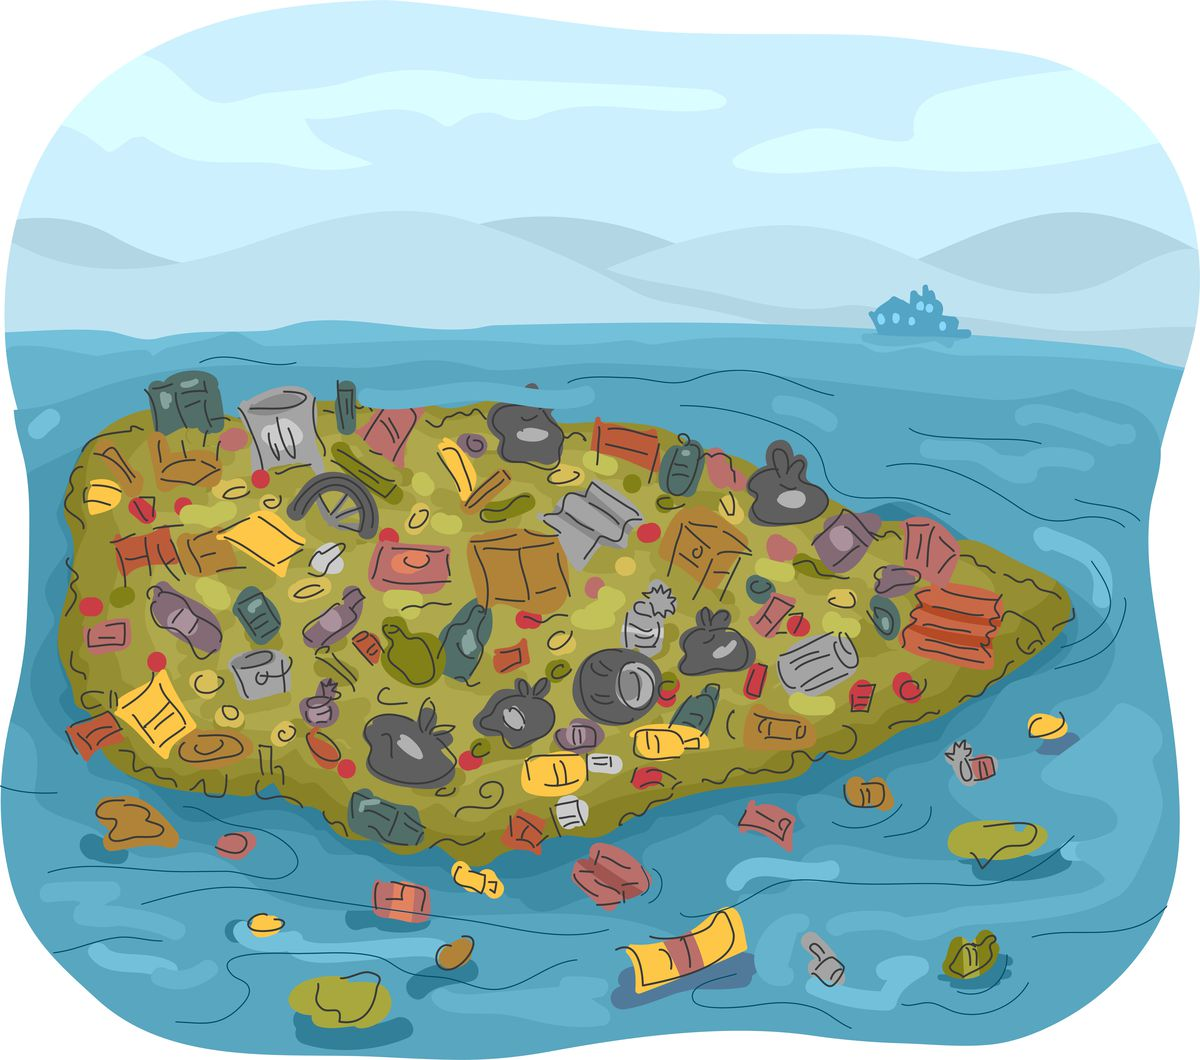 Illustration of garbage patch in the ocean